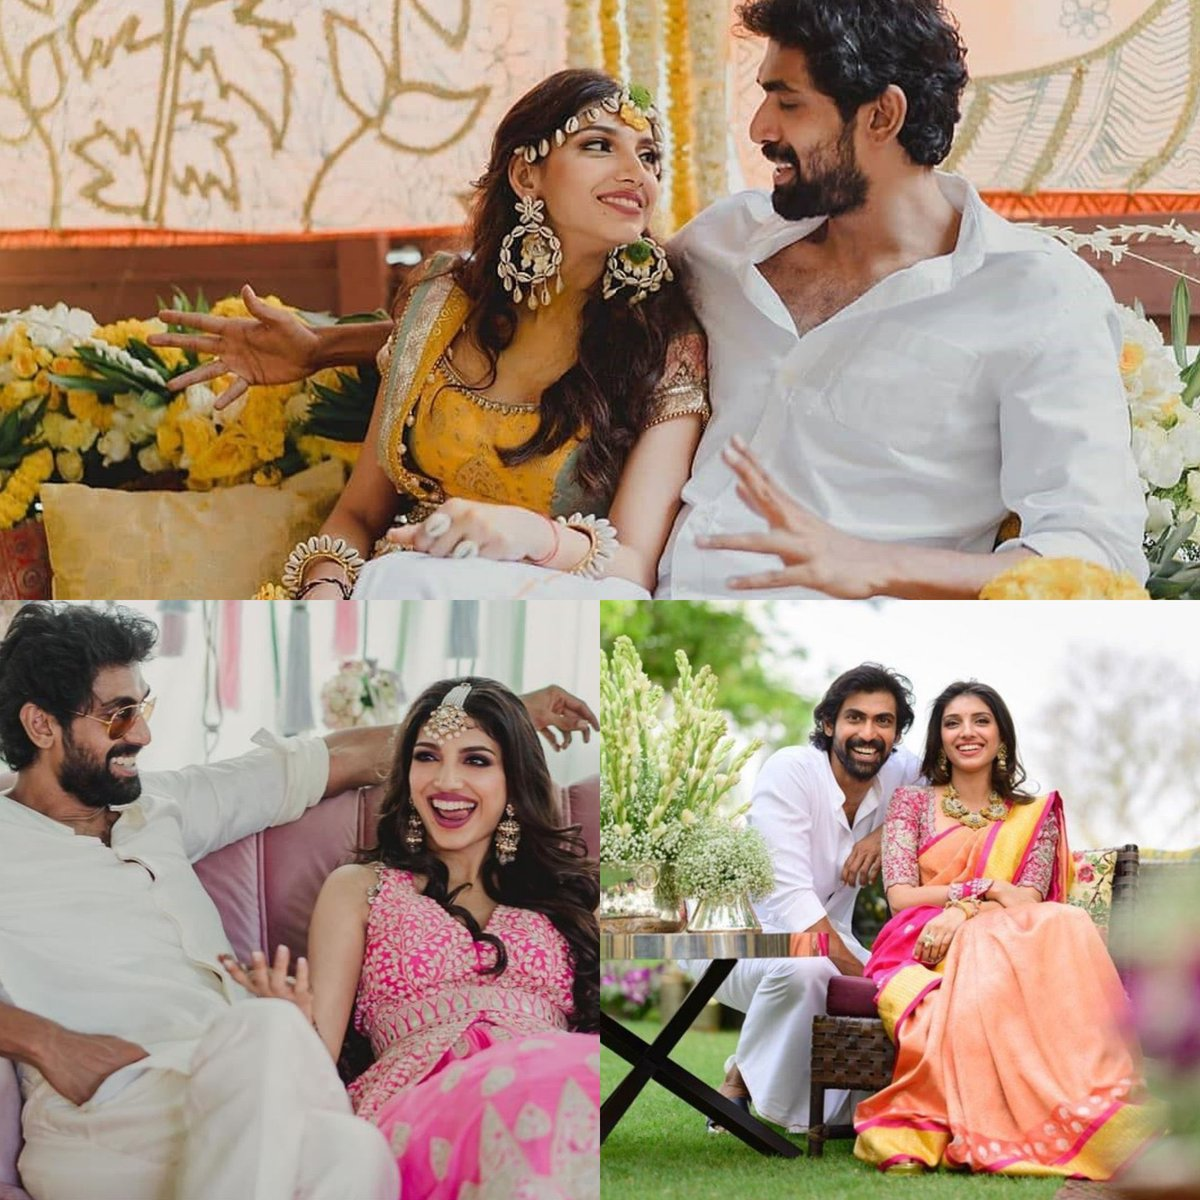 Congratulations brother @RanaDaggubati and miheeka. When everyone wanted to know who? U showed the world with lots of joy and the happiness is sealed forever. God bless you both. Looking beautiful and just made for each other.